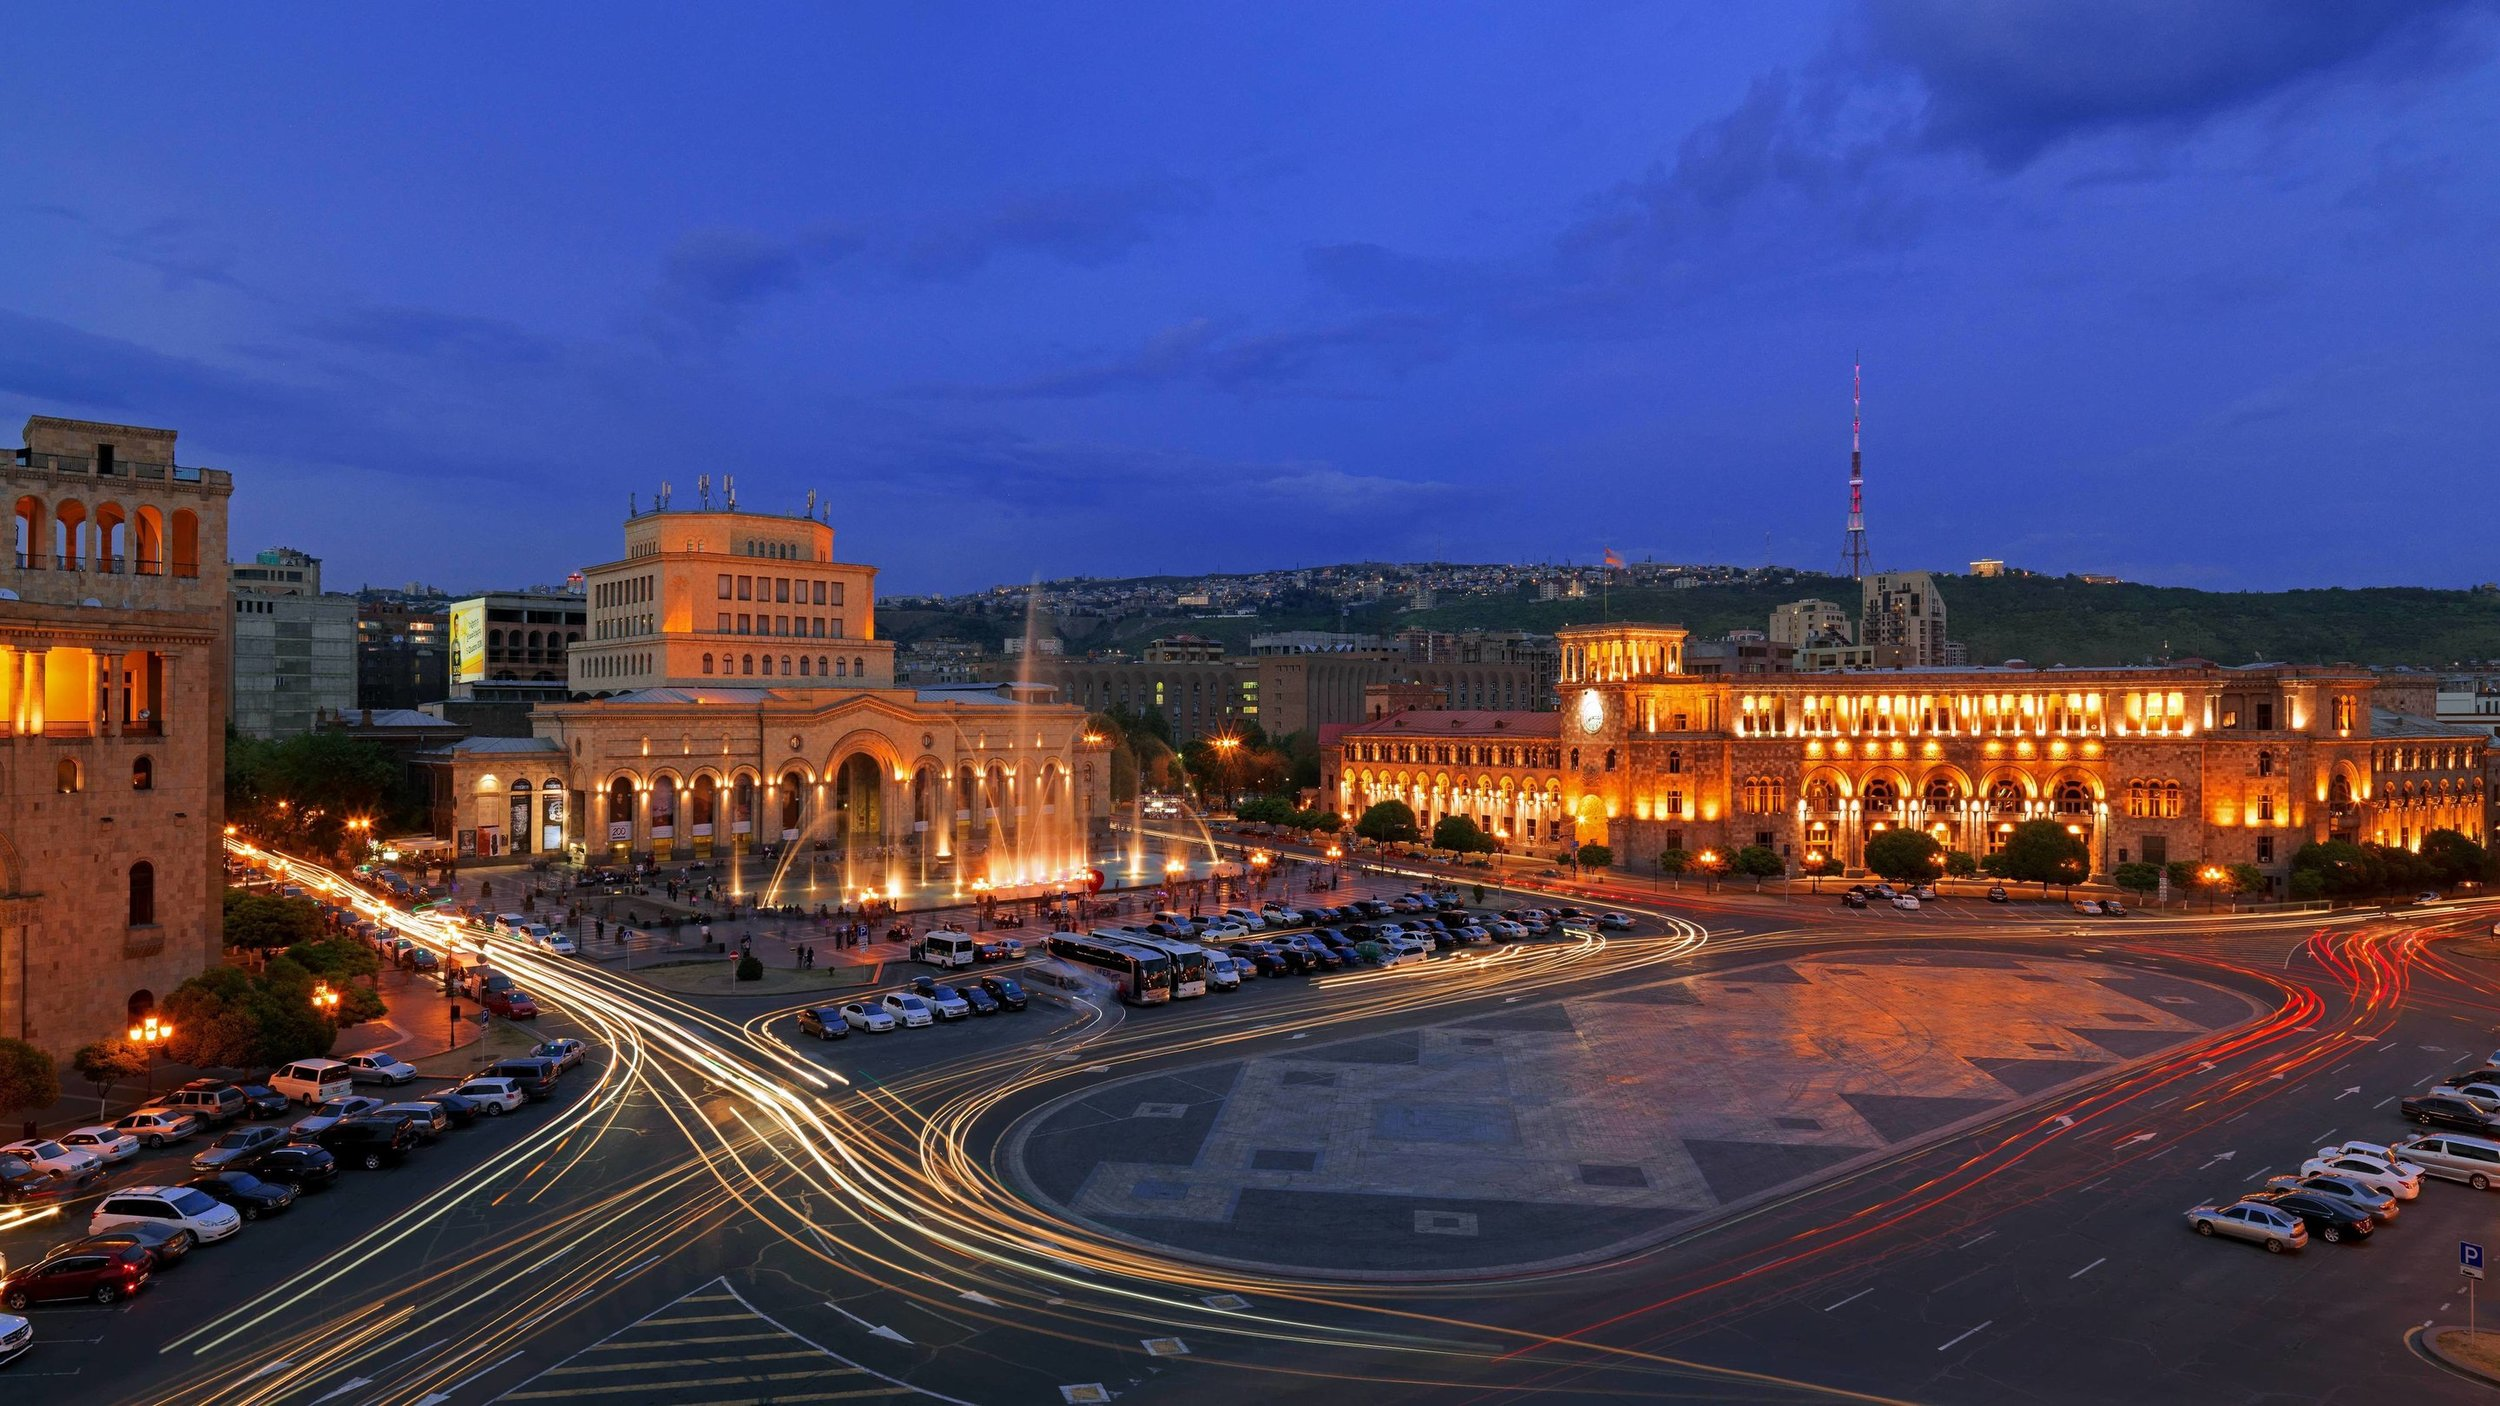 The city of Yerevan comes alive at night. View of the Republic Square.